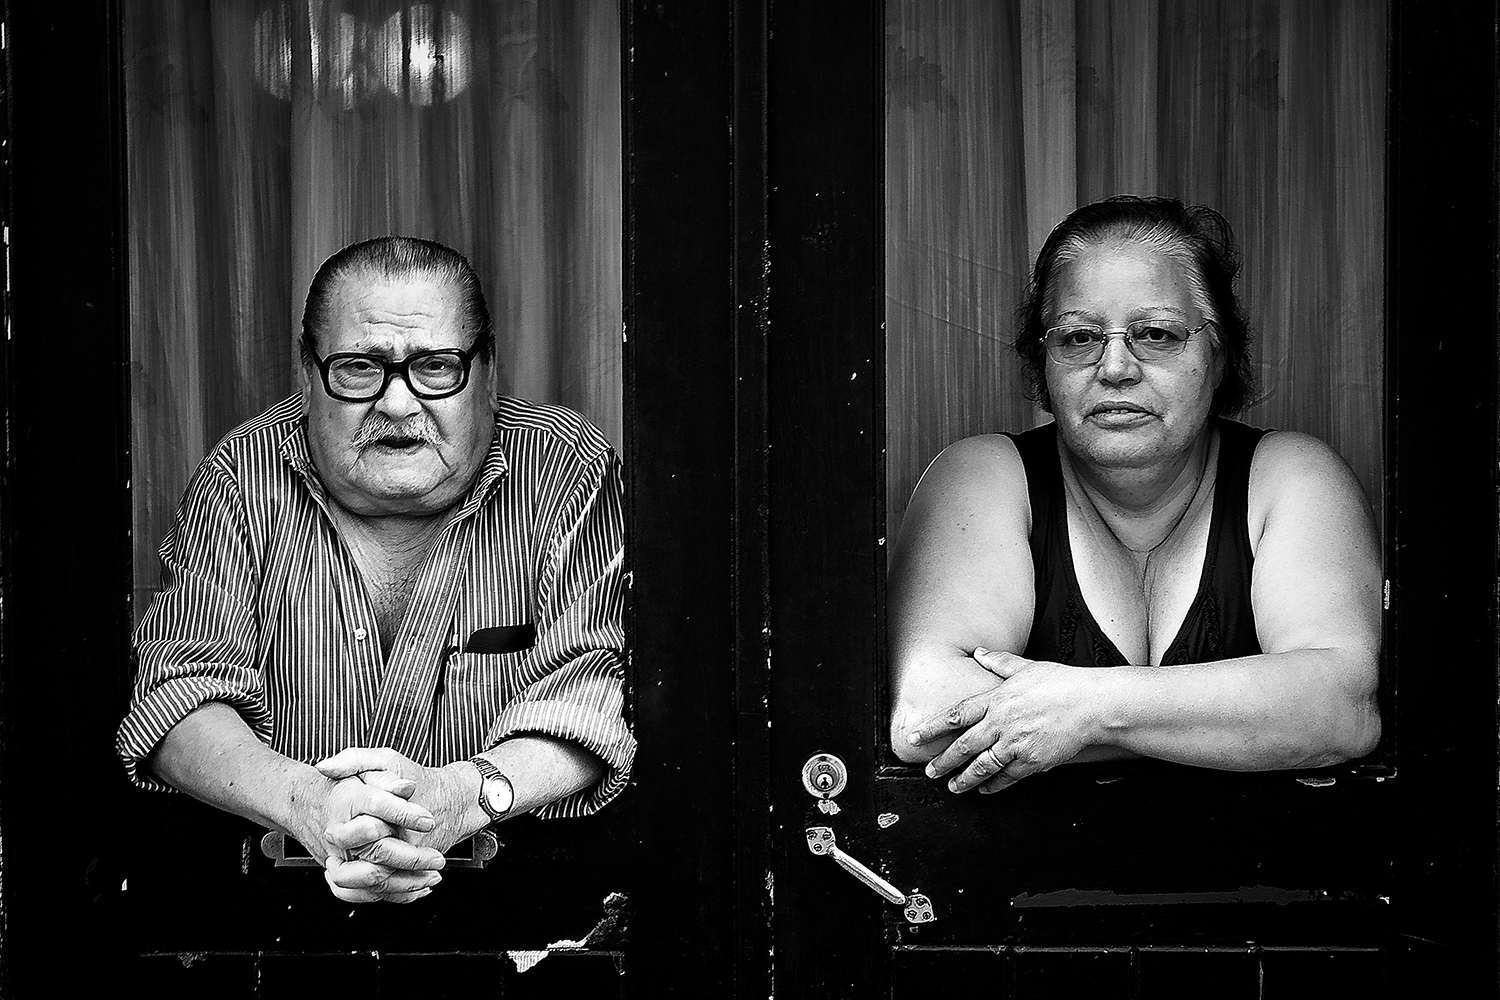 <h5>rostos do bairro | faces of the neighborhood , Lisboa 2009</h5>